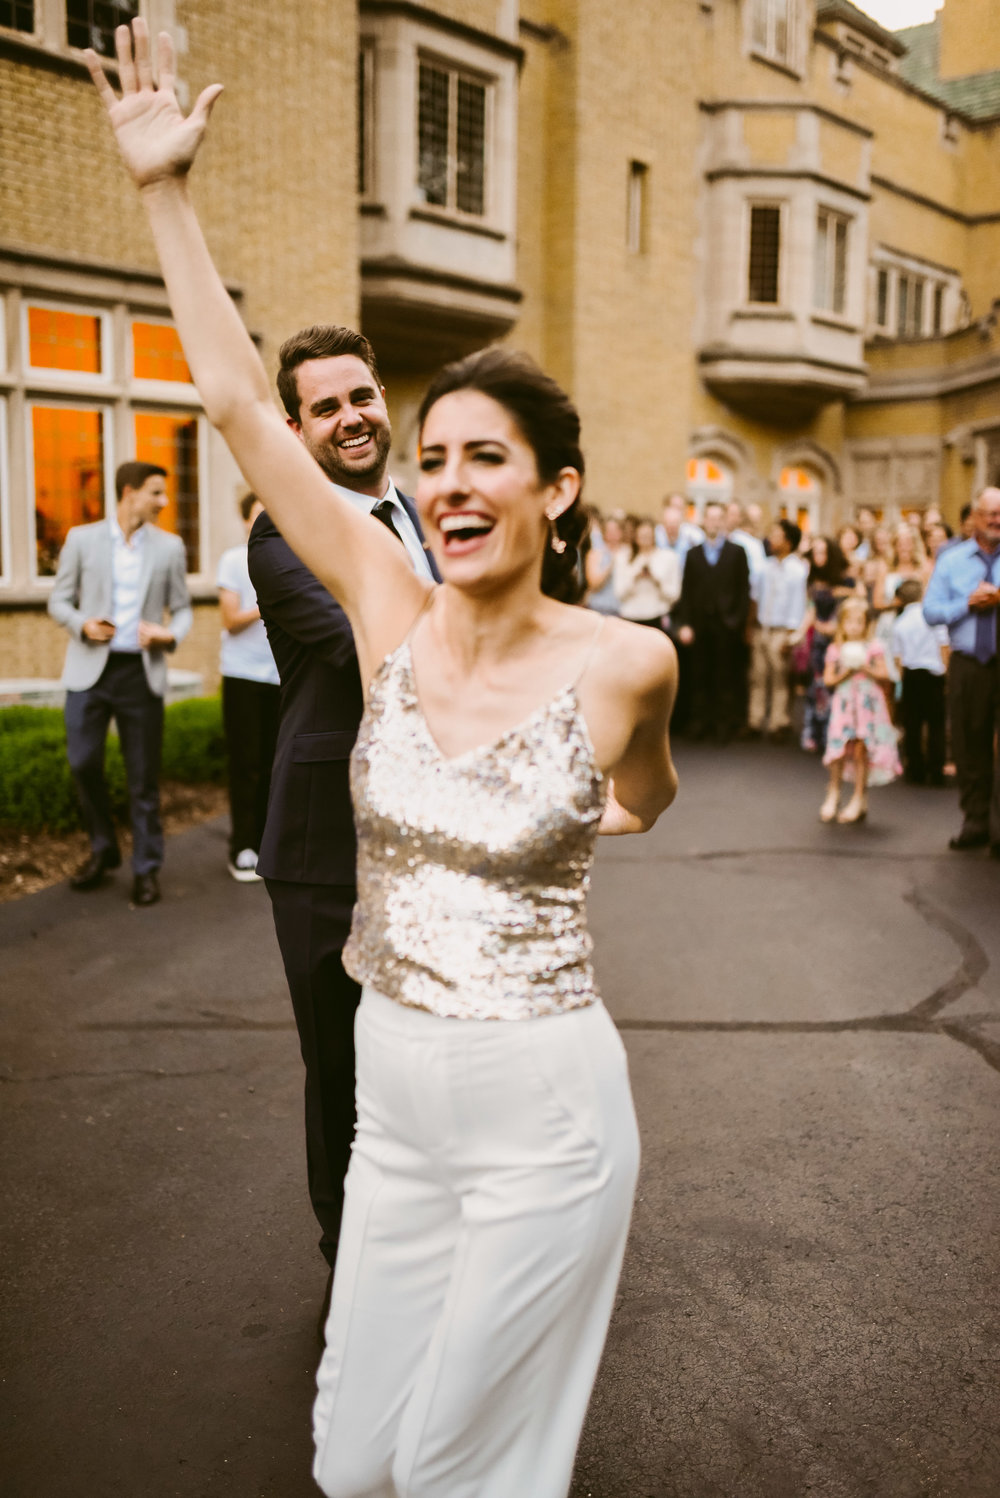 Dancing into their new lives like Heck Yes!!!! Also, can we talk about this outfit change? A super chic pant and sequin tank top? This bride is goals!!!!